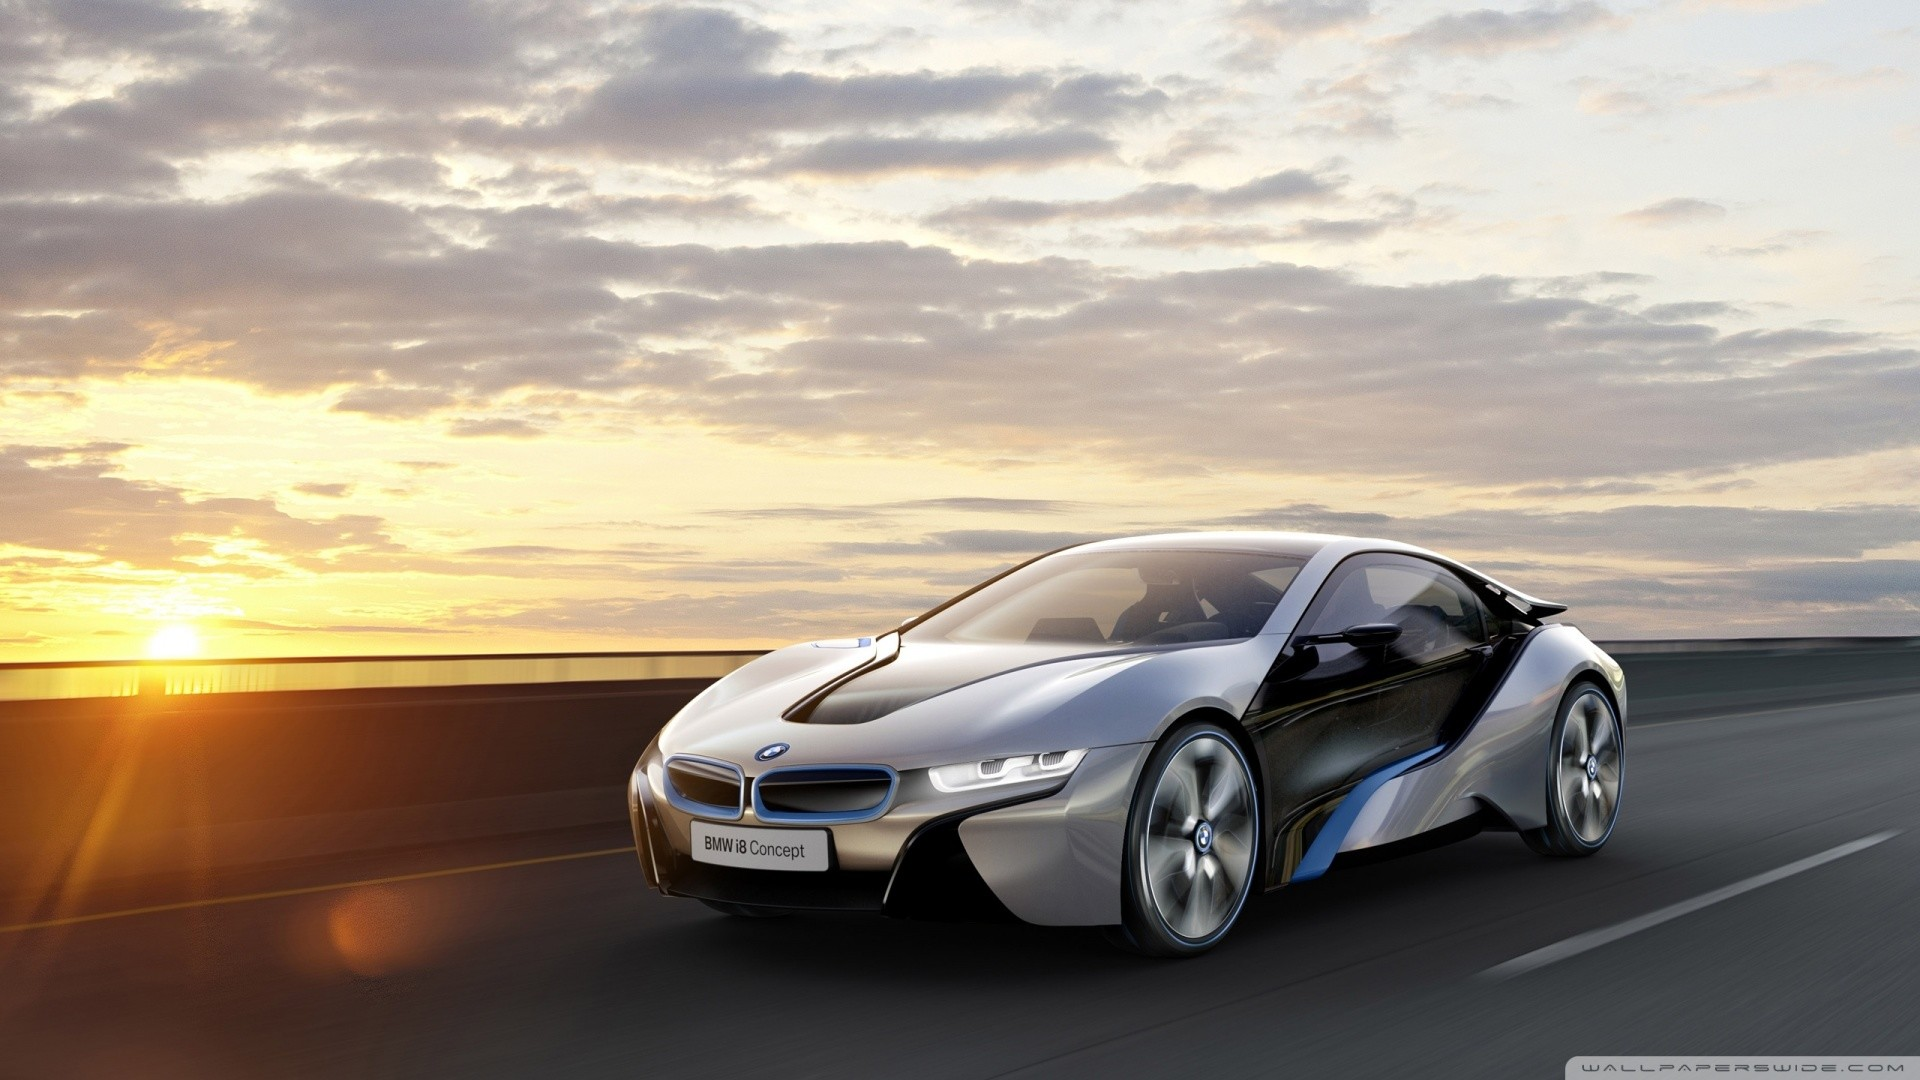 1920x1080 94 BMW i8 HD Wallpapers | Backgrounds - Wallpaper Abyss